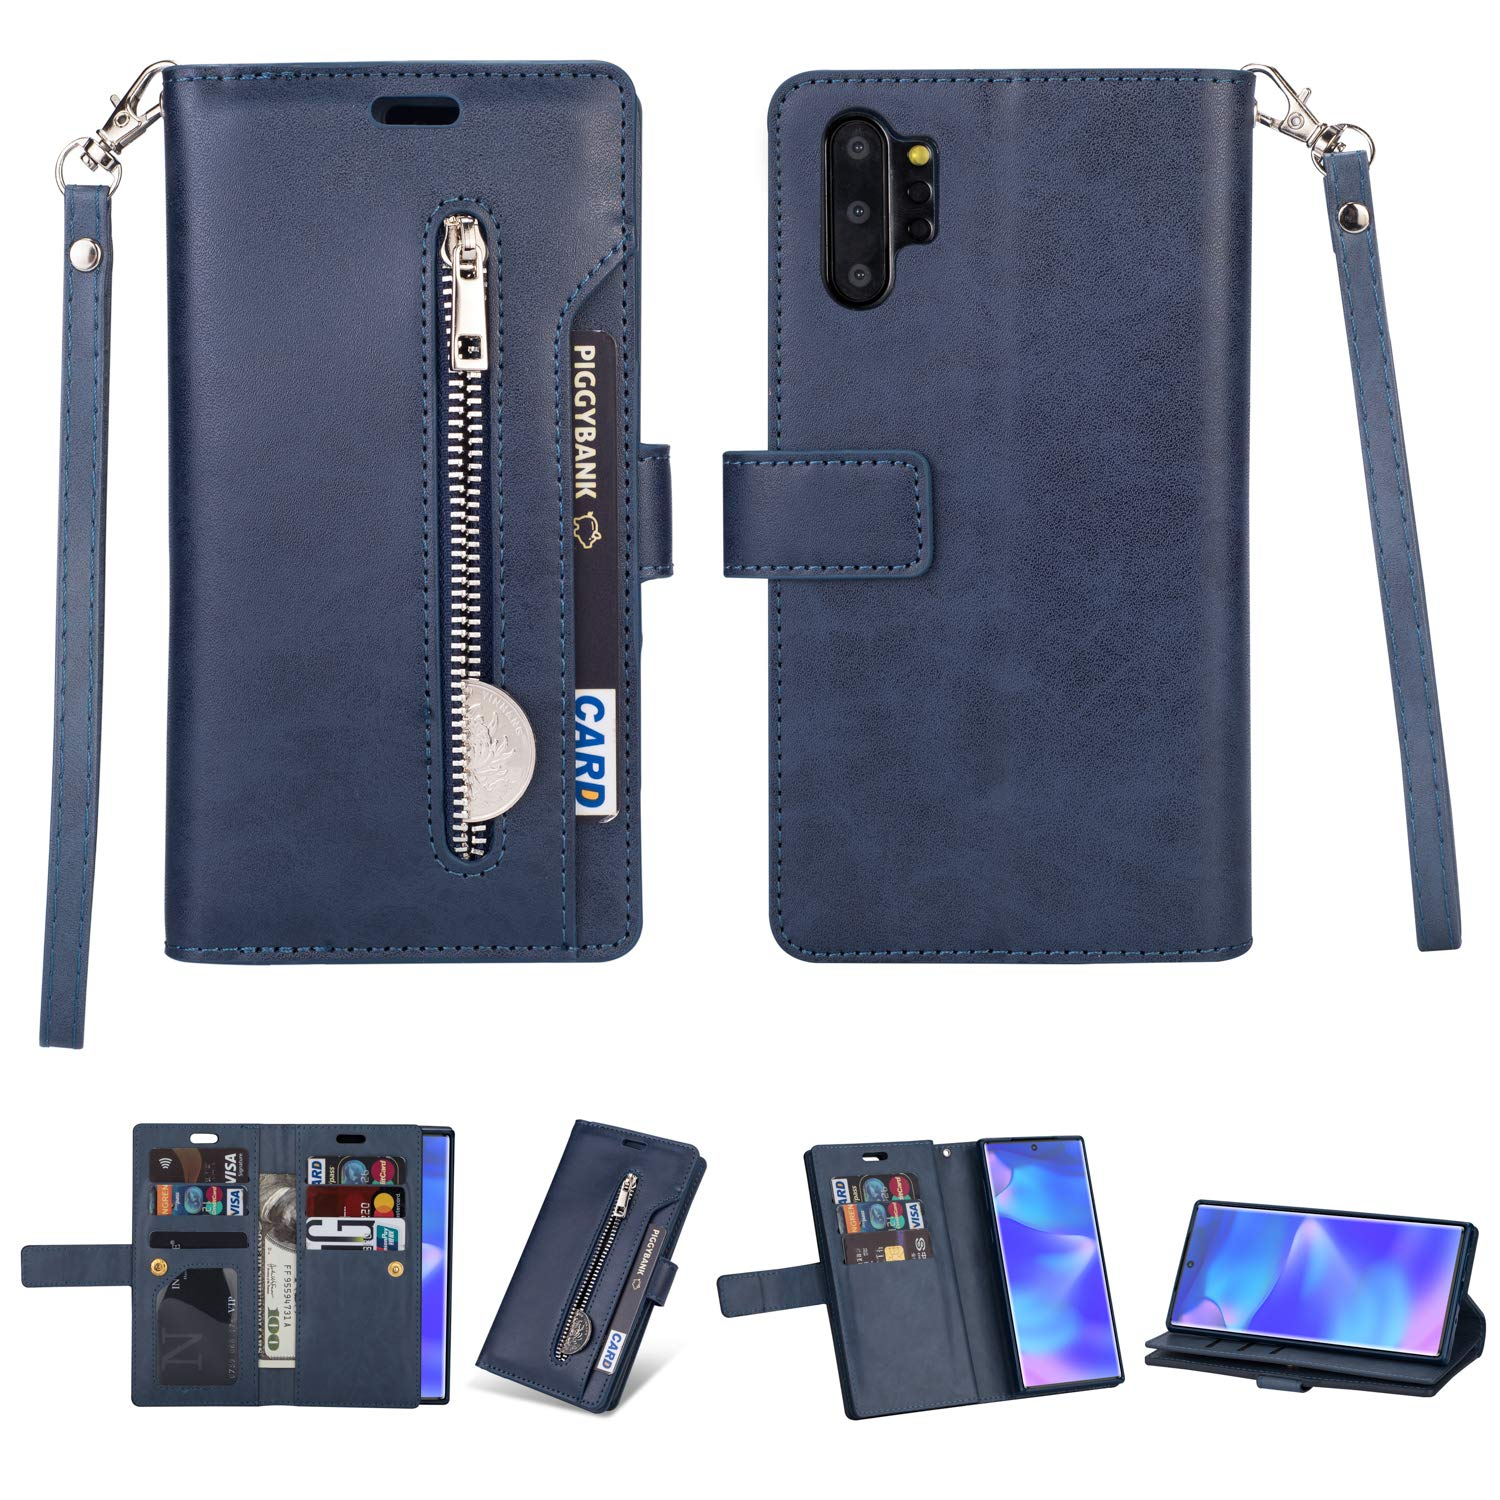 DAMONDY for Samsung Note 10 Plus Case,Zipper Stand Wallet Purse 9 Card Slot ID Holders Design Flip Cover Pocket Purse Leather Magnetic Protective for Samsung Galaxy Note 10 Plus-deep Blue by DAMONDY